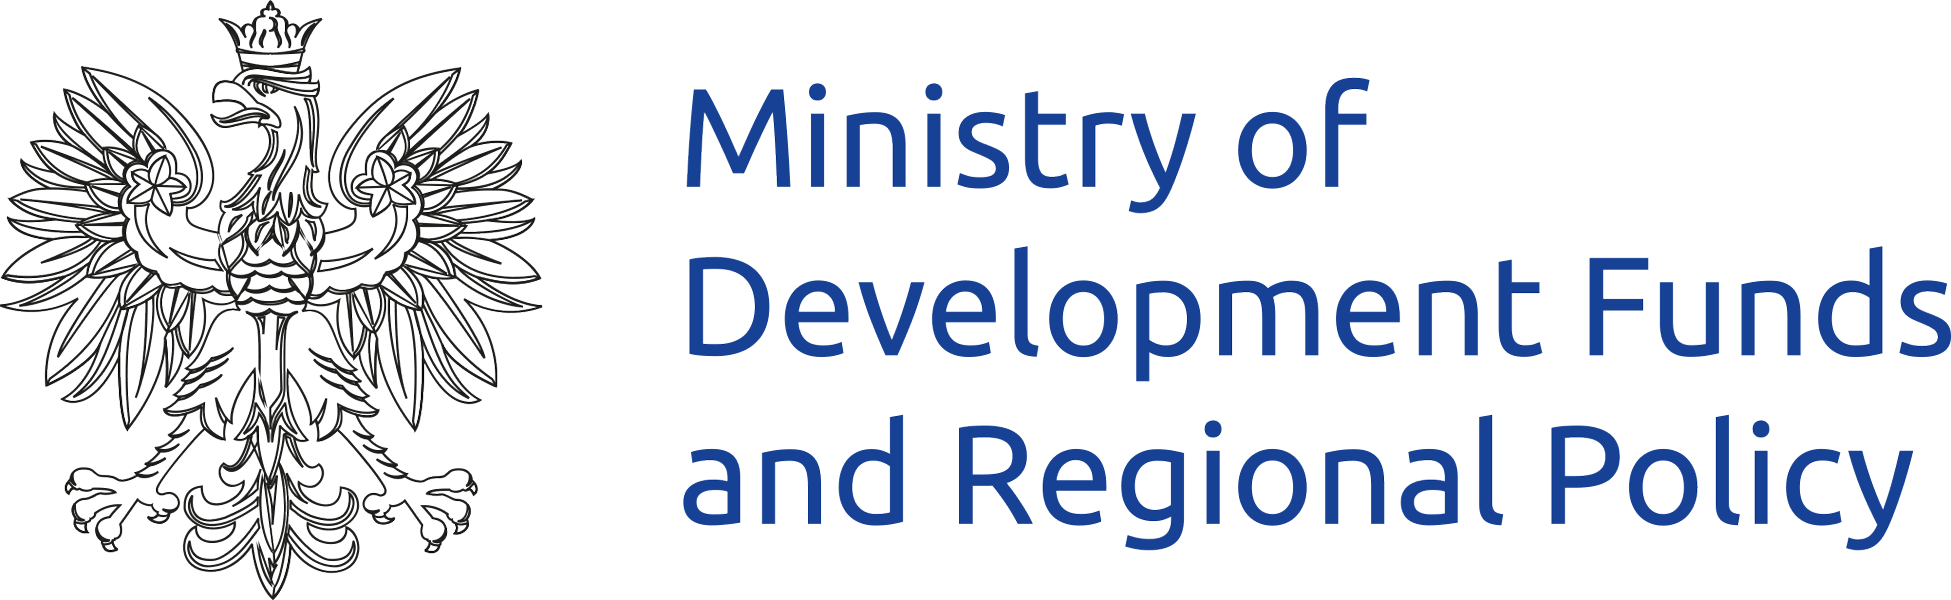 Logo of Ministry of Development Funds and Regional Policy - link to website